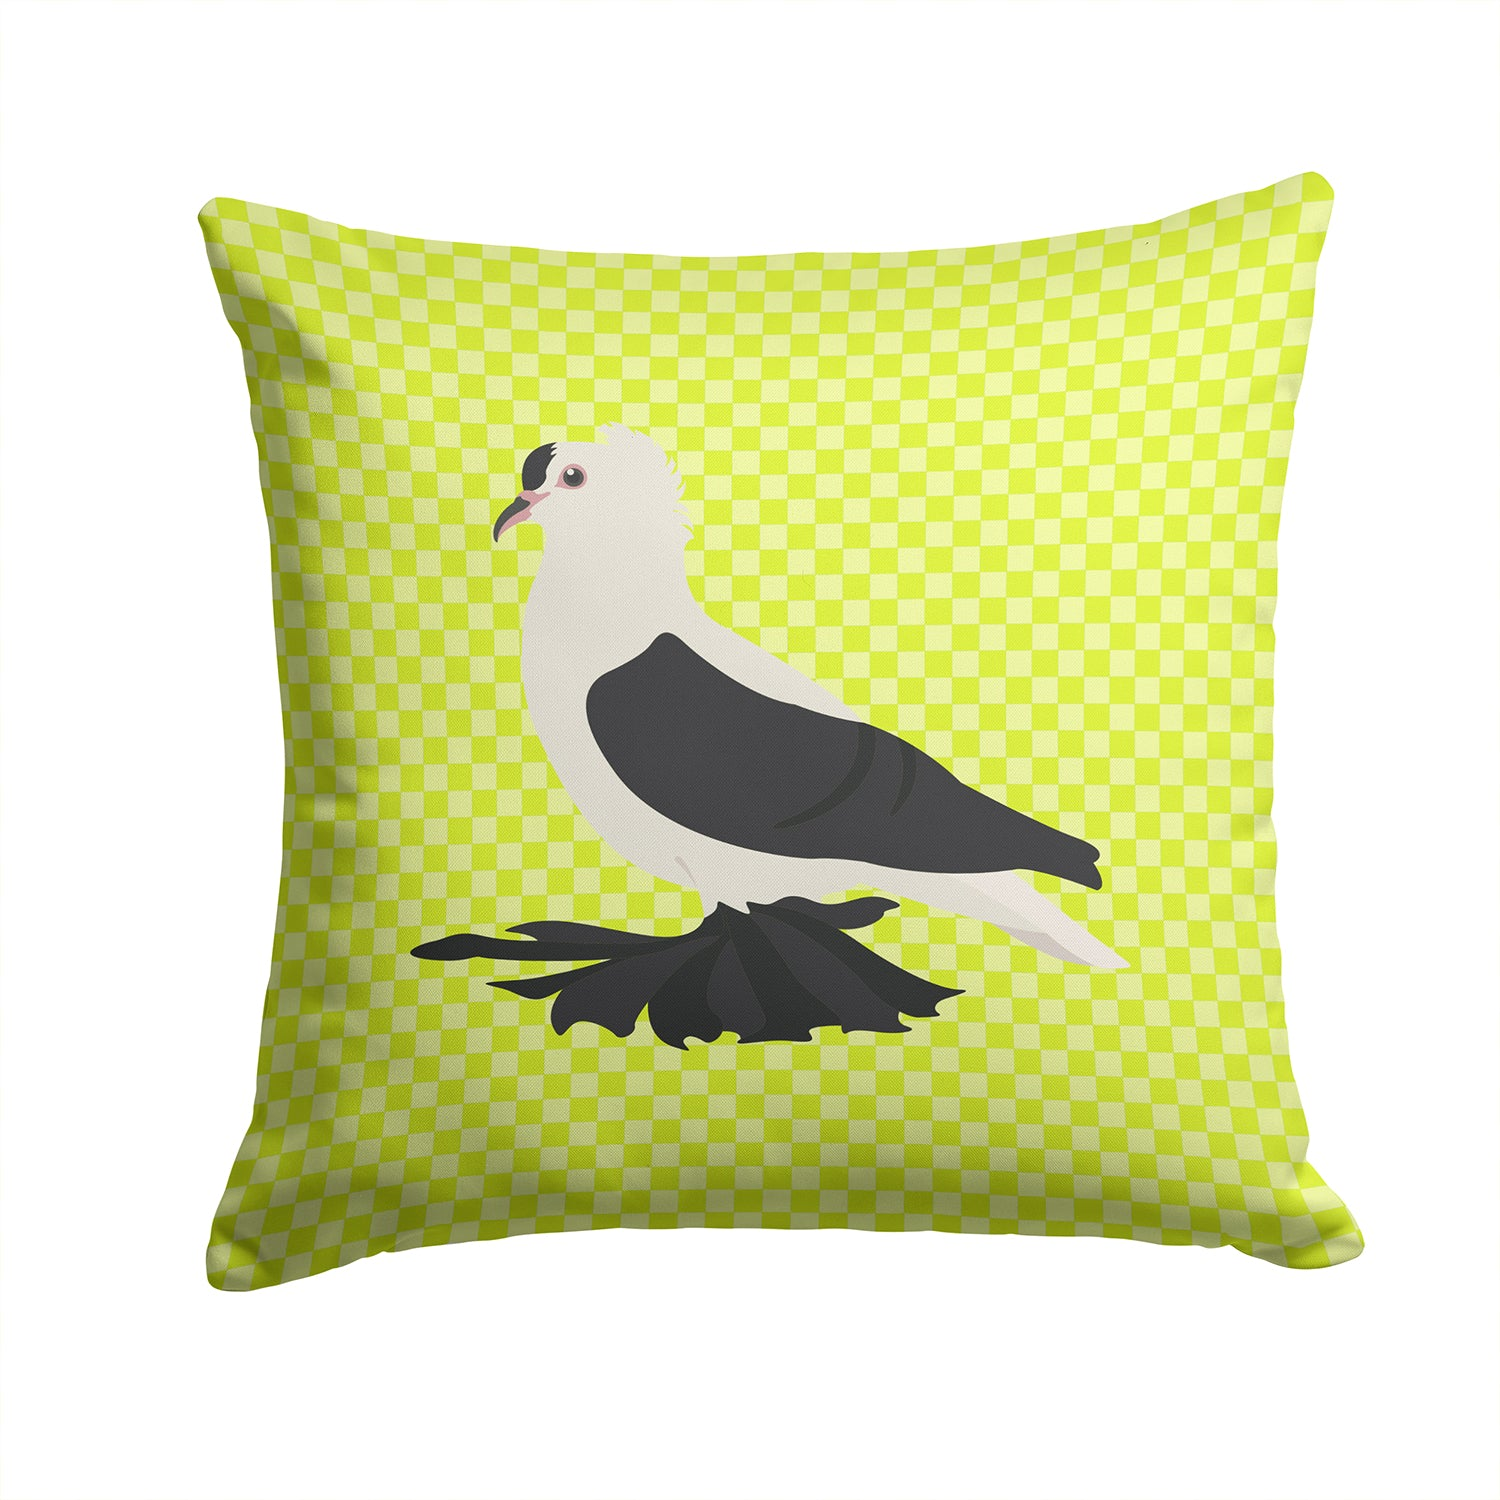 Saxon Fairy Swallow Pigeon Green Fabric Decorative Pillow BB7772PW1414 by Caroline's Treasures